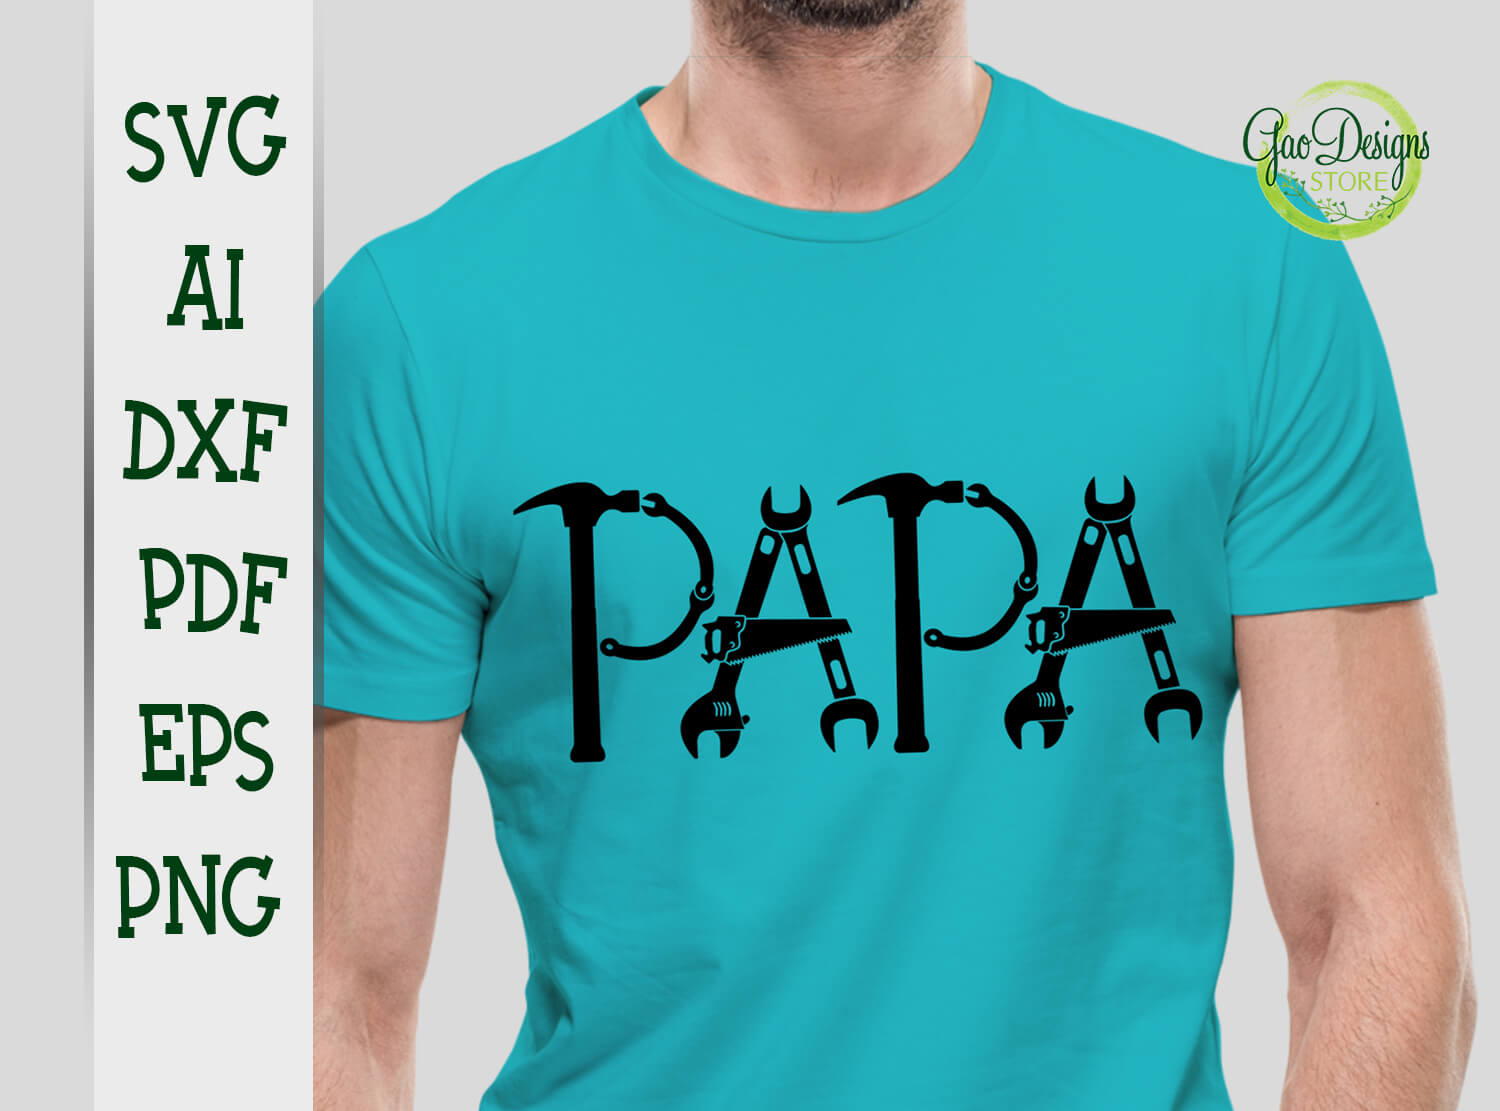 Free 330x388 dad and child clipart fathers day clipart amp backgrounds. Skip To Content Submit Close Search Just Added To Your Cart Qty View Cart Continue Shopping Save Money With Coupons More Click Here Gaodesigns Store Best Svg Files For Crafter Home Collections All Products Easter Mother S Day Mardi Gras St SVG, PNG, EPS, DXF File